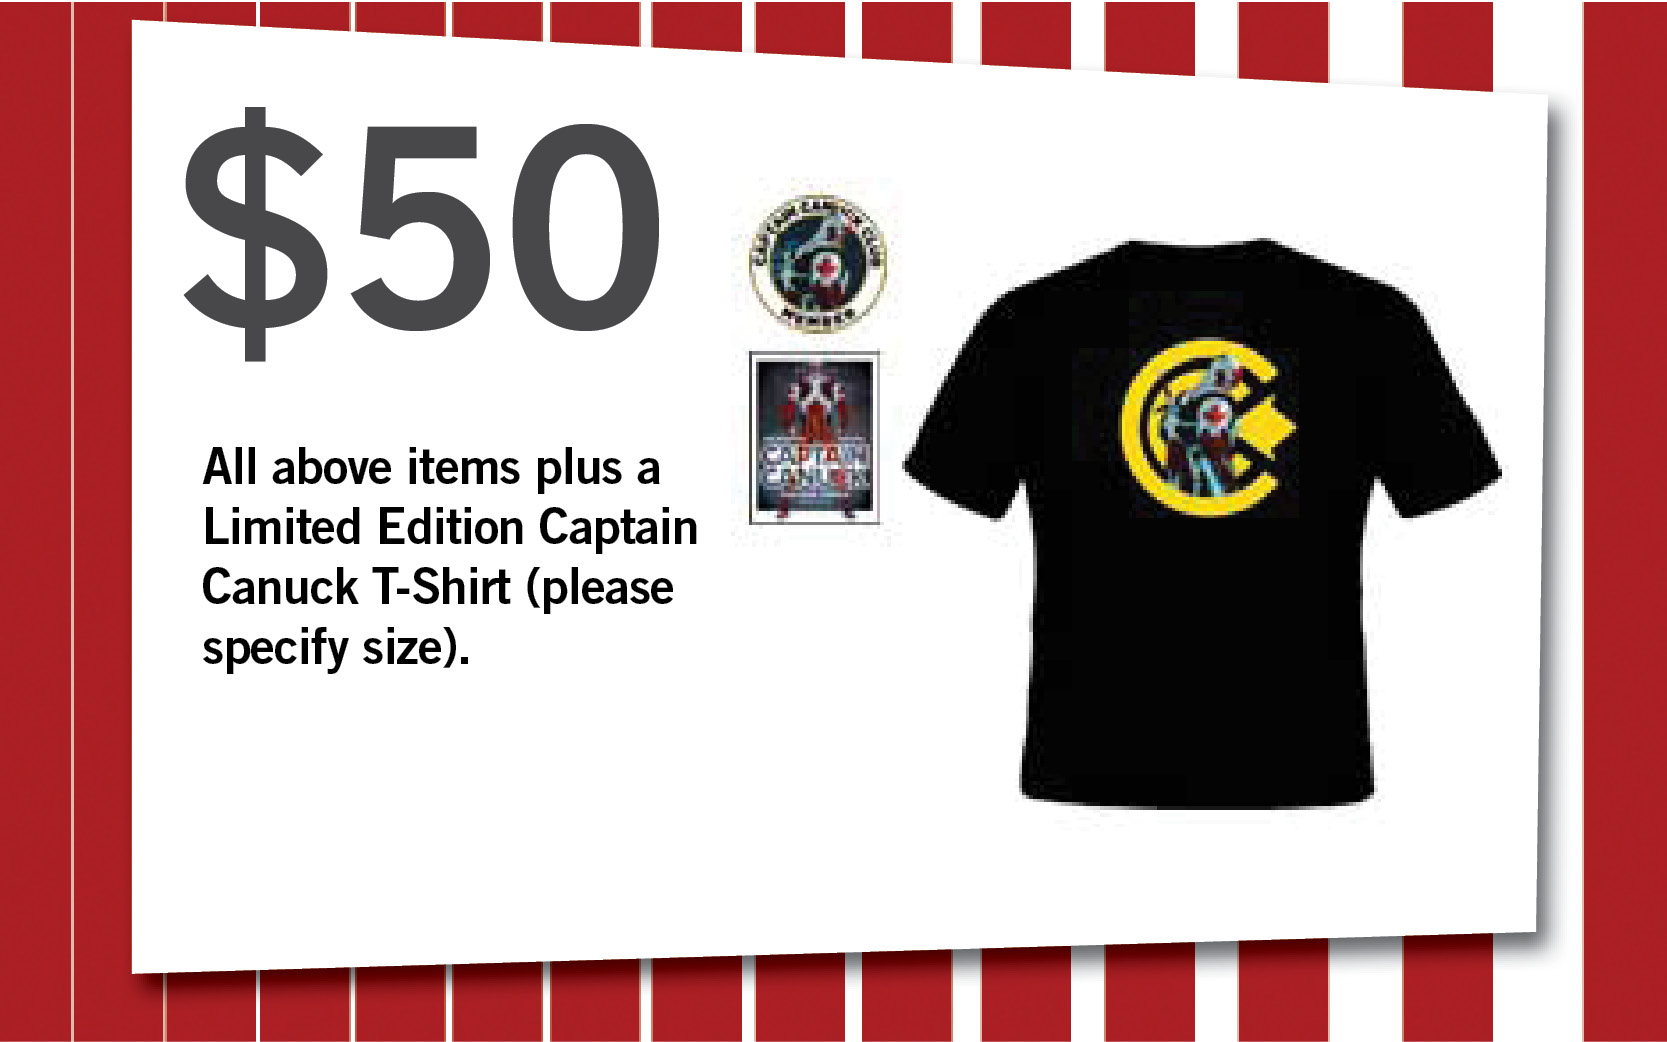 All above items plus a Limited Edition Captain Canuck T-Shirt (please specify size).